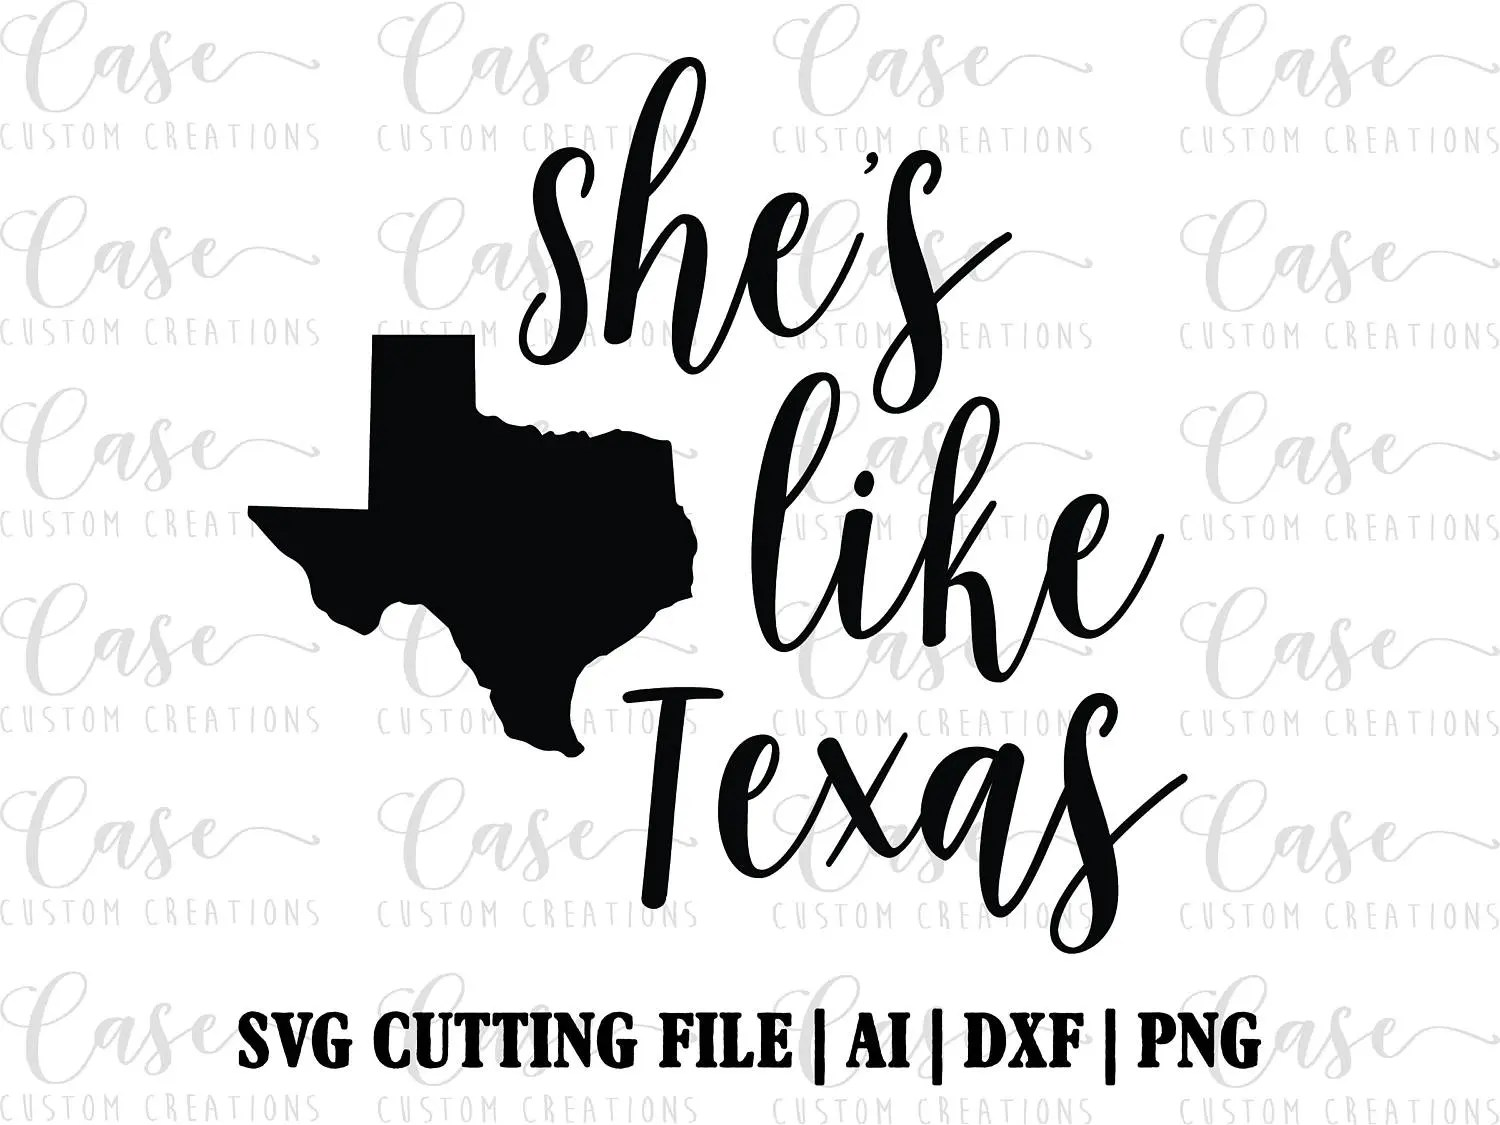 She's Like Texas SVG Cutting File Ai Dxf and Png Printable